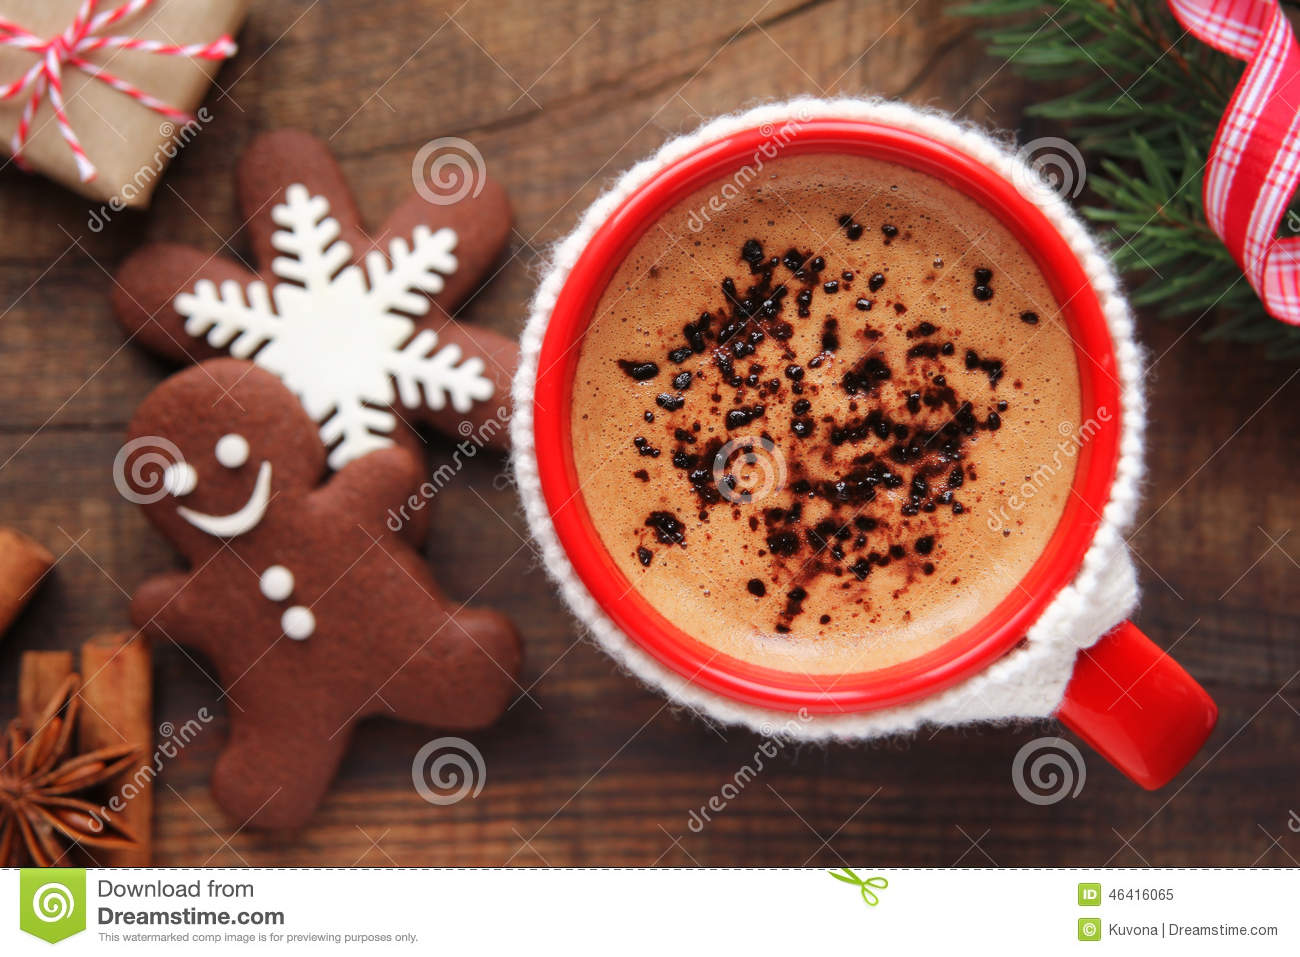 Coffee Christmas Morning.Christmas Morning Coffee And Cookies Stock Image Image Of